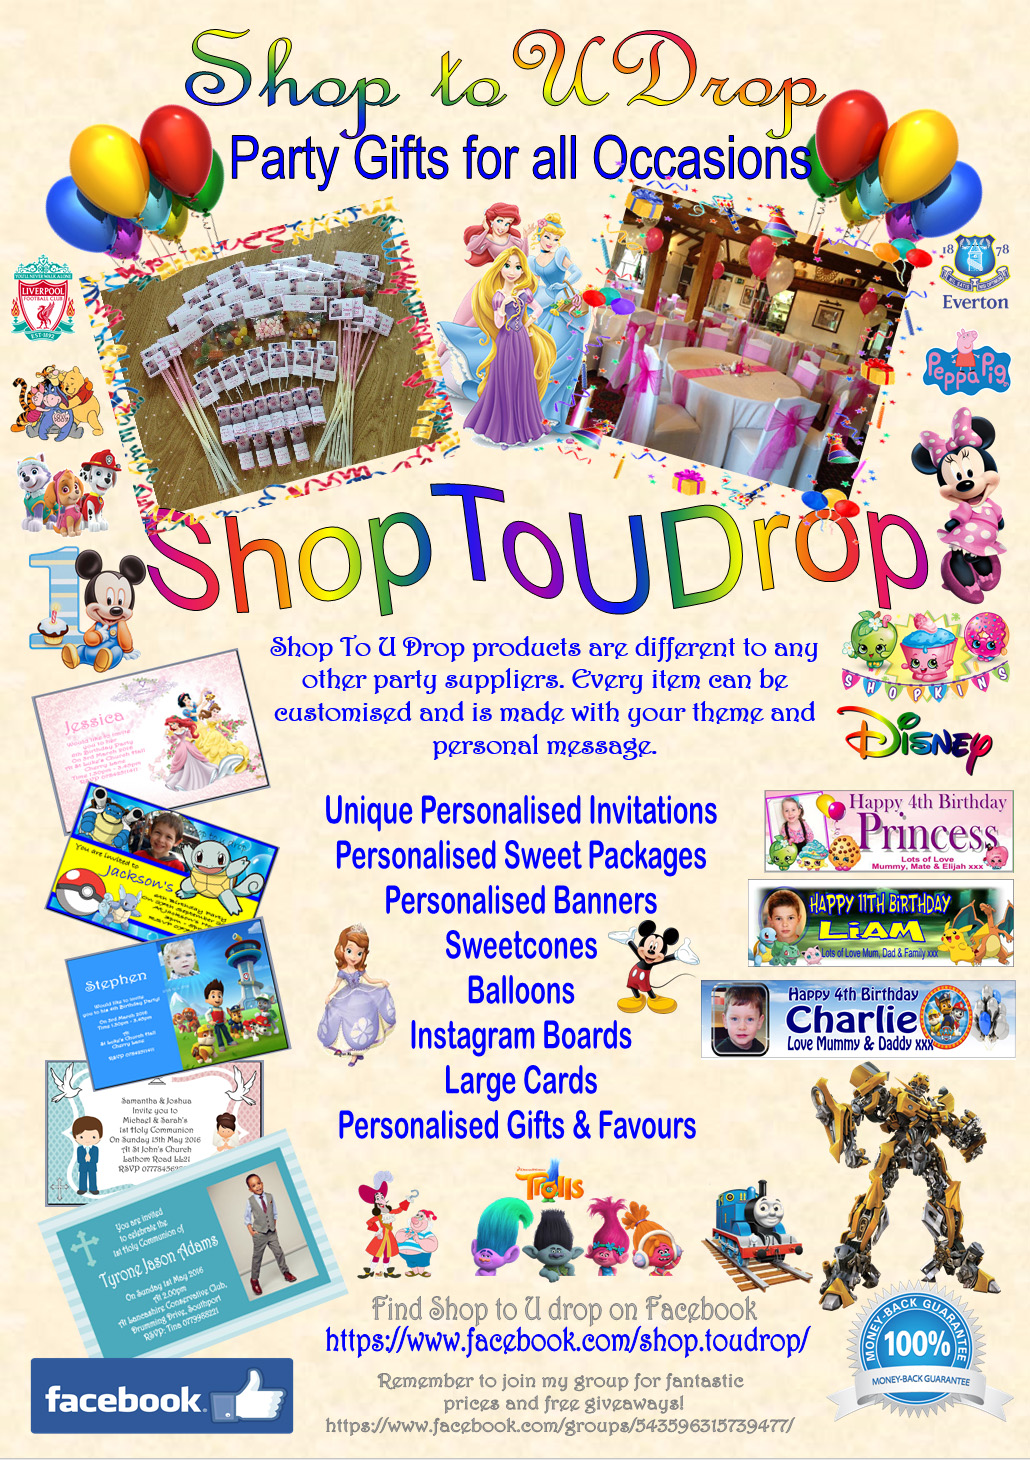 Shop to u drop Custom Personalised Party Suppliers – Everton Birthday Cards